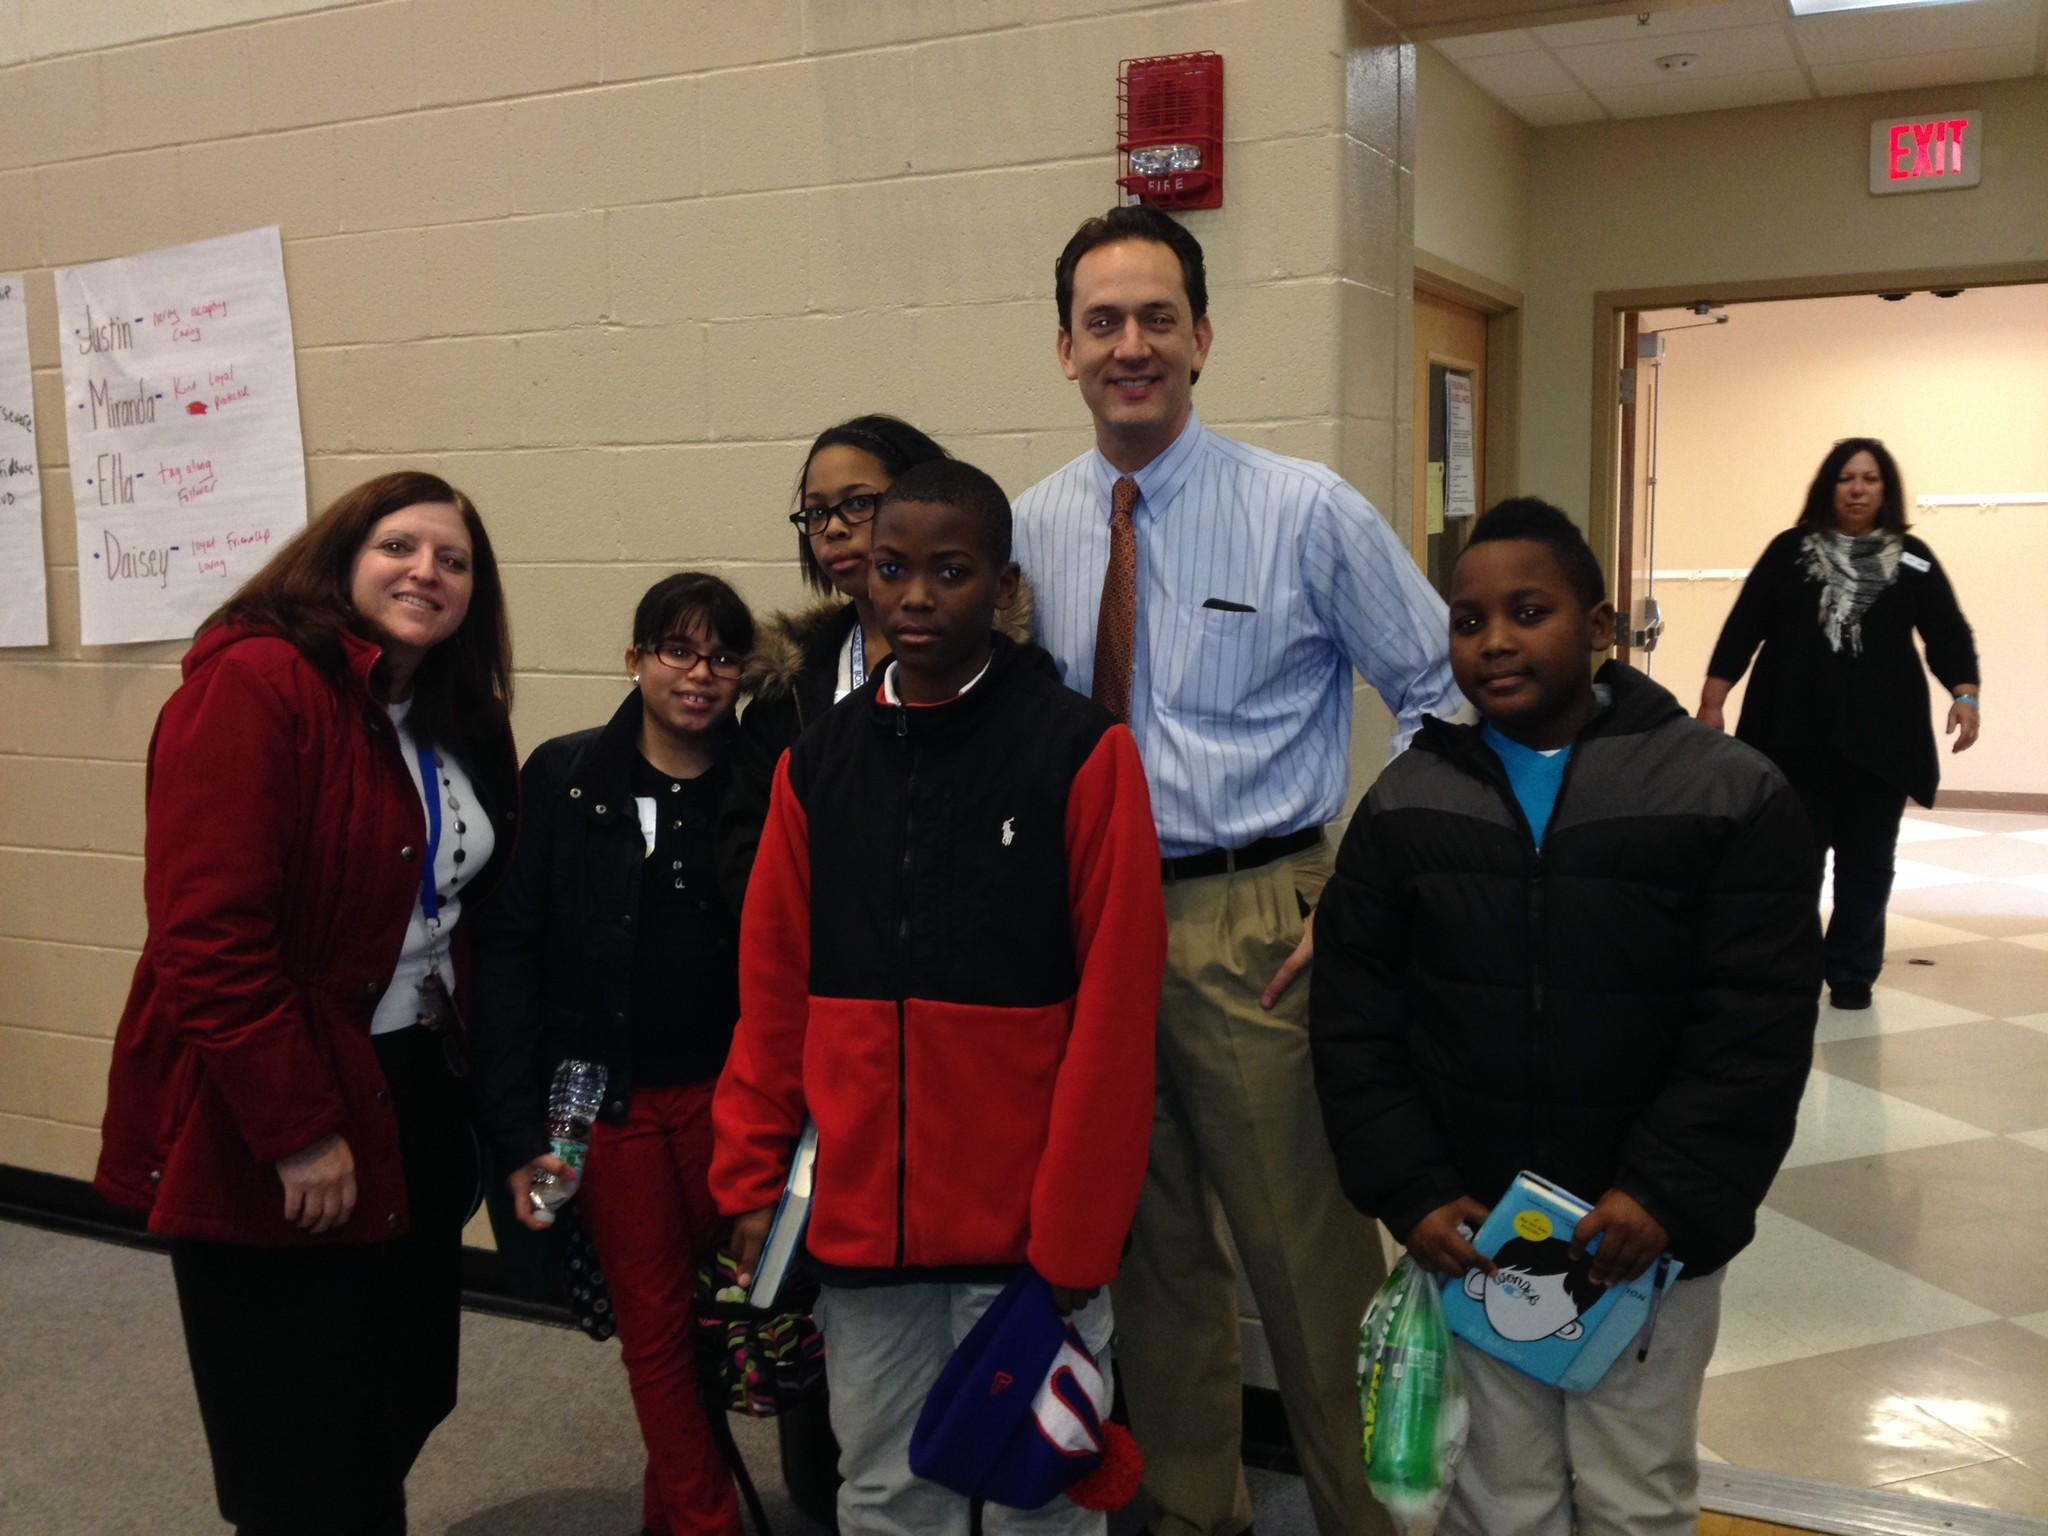 In the photo with NBC Connecticut's Brad Drazen are from left to right: Joanne Shulman and students Elicia Colon, Zoe Morris, Michael Collins, Jr. and Luke McLean.